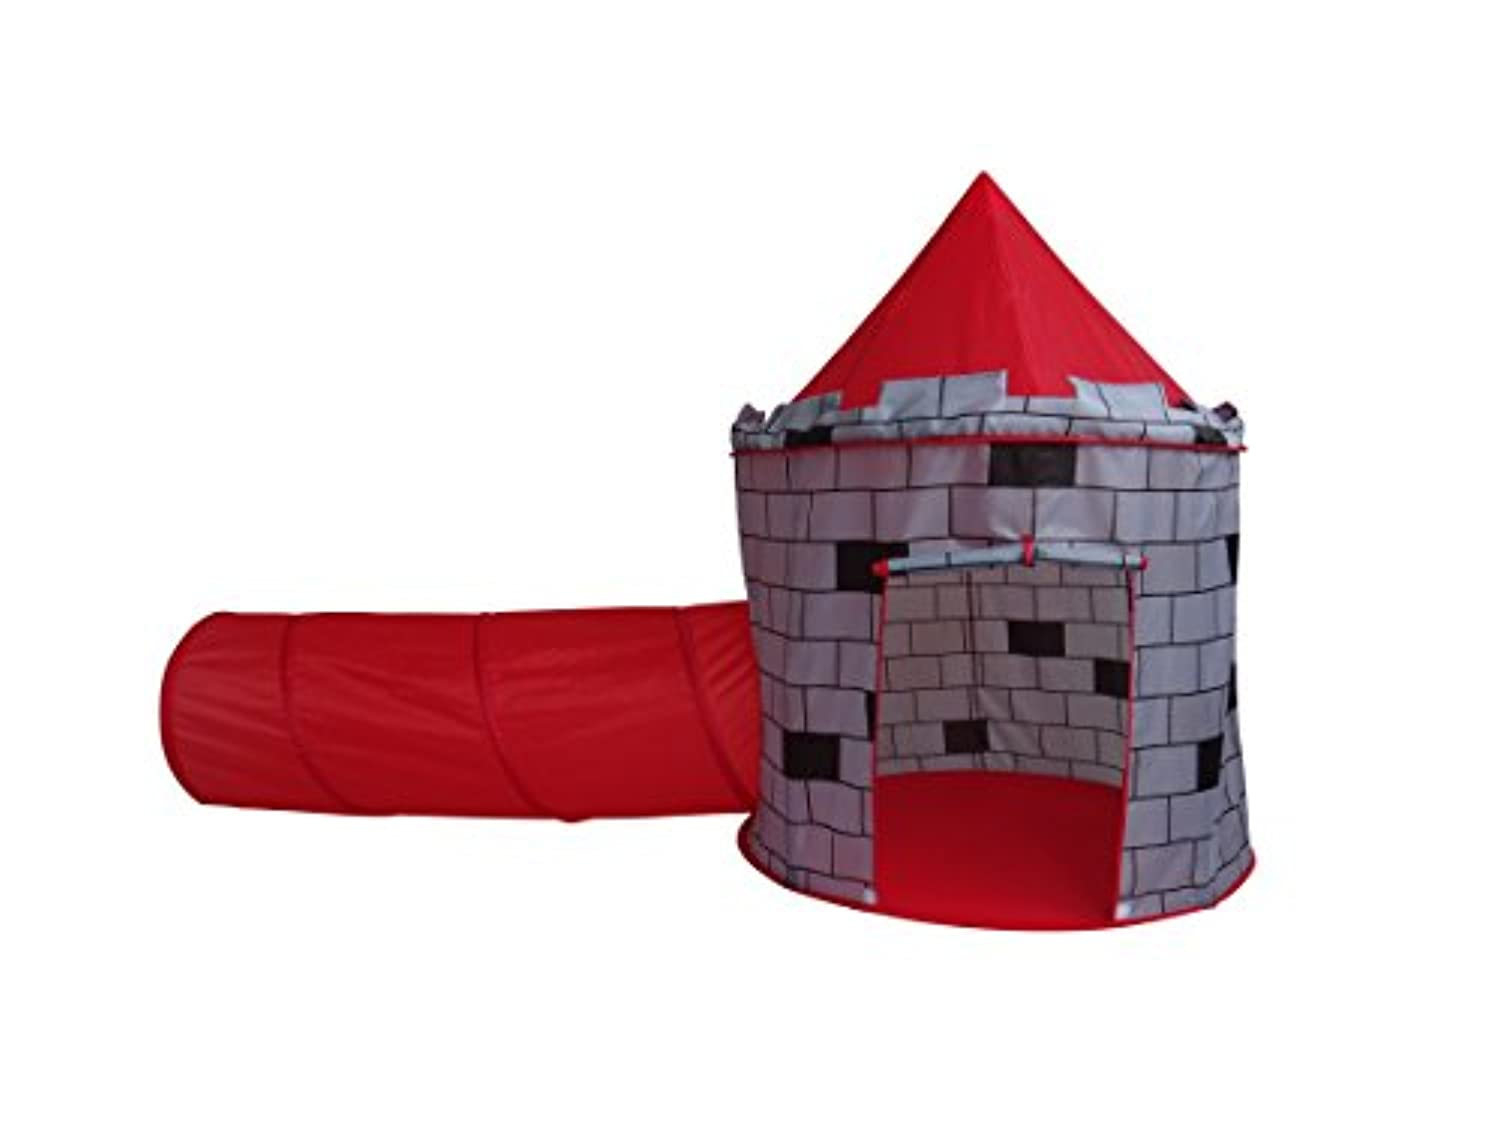 Play Kreative Red Knights Castle Tent with Crawling Tunnel and Carry Case. Portable Foldable pop up Knights Castle Playhouse for indoor/outdoor Kids fun activities. Great Birthday Gift for Girl or Boy